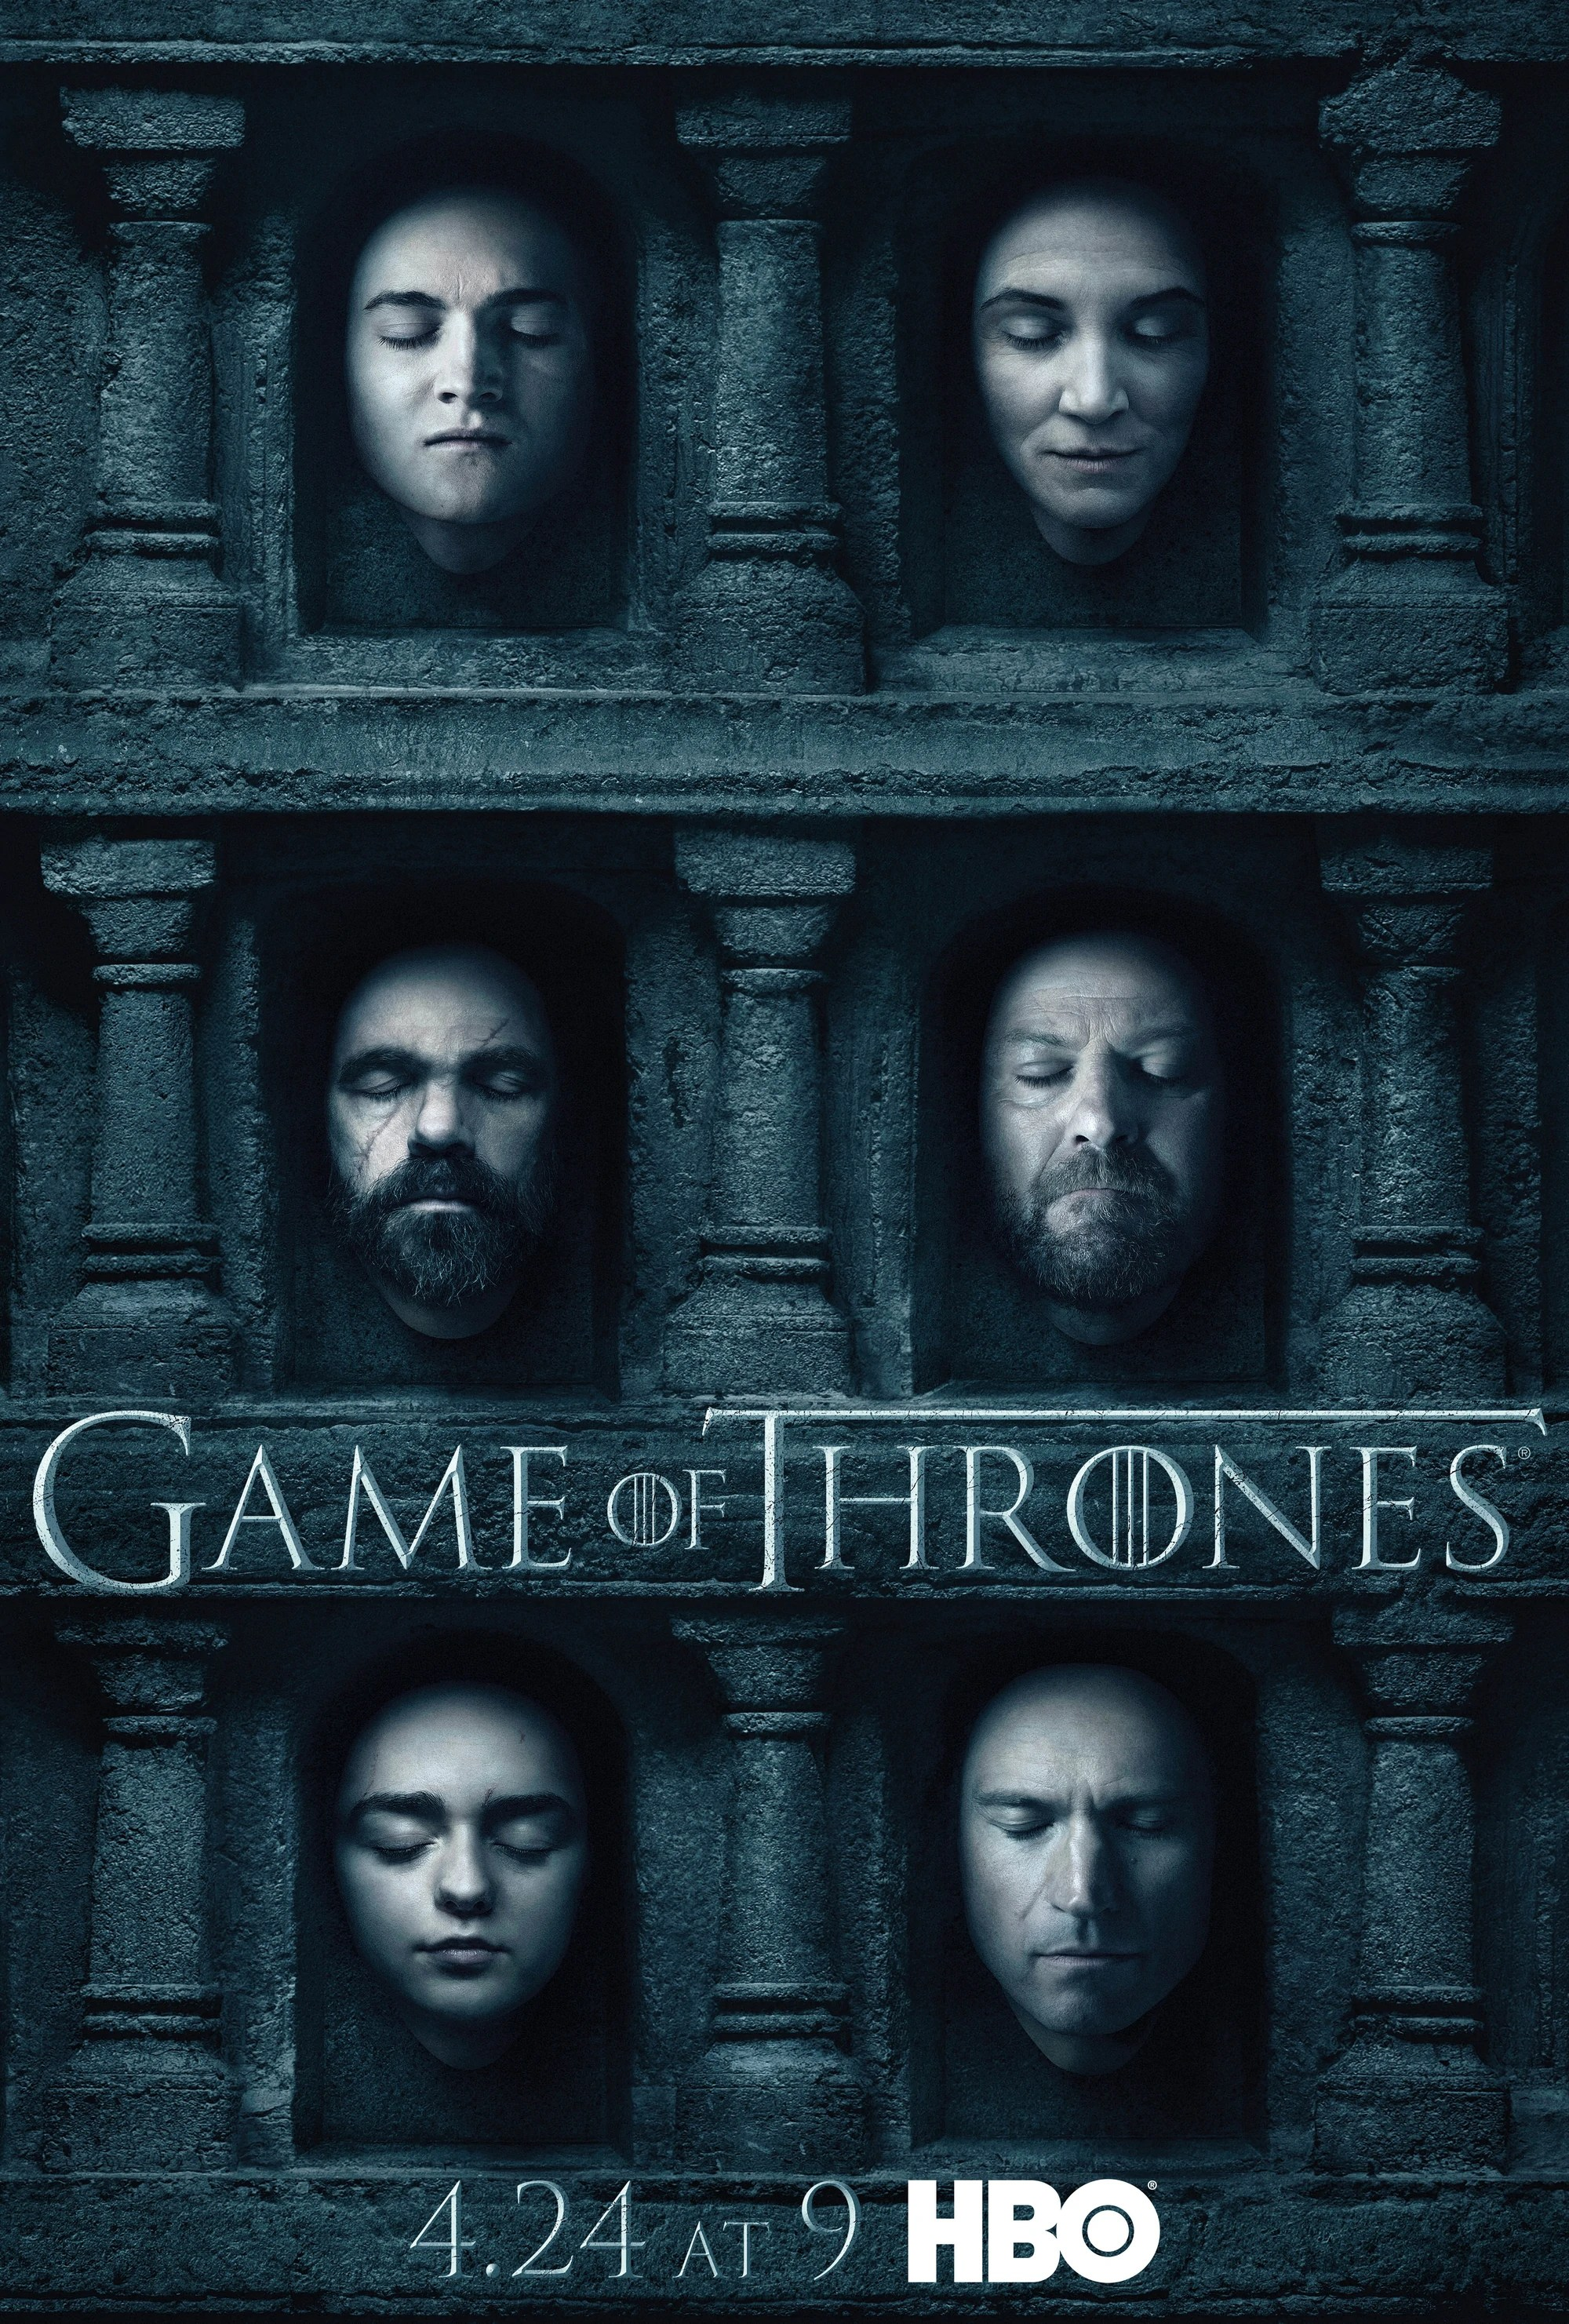 What a Tease! New game of thrones season 6 poster has fans